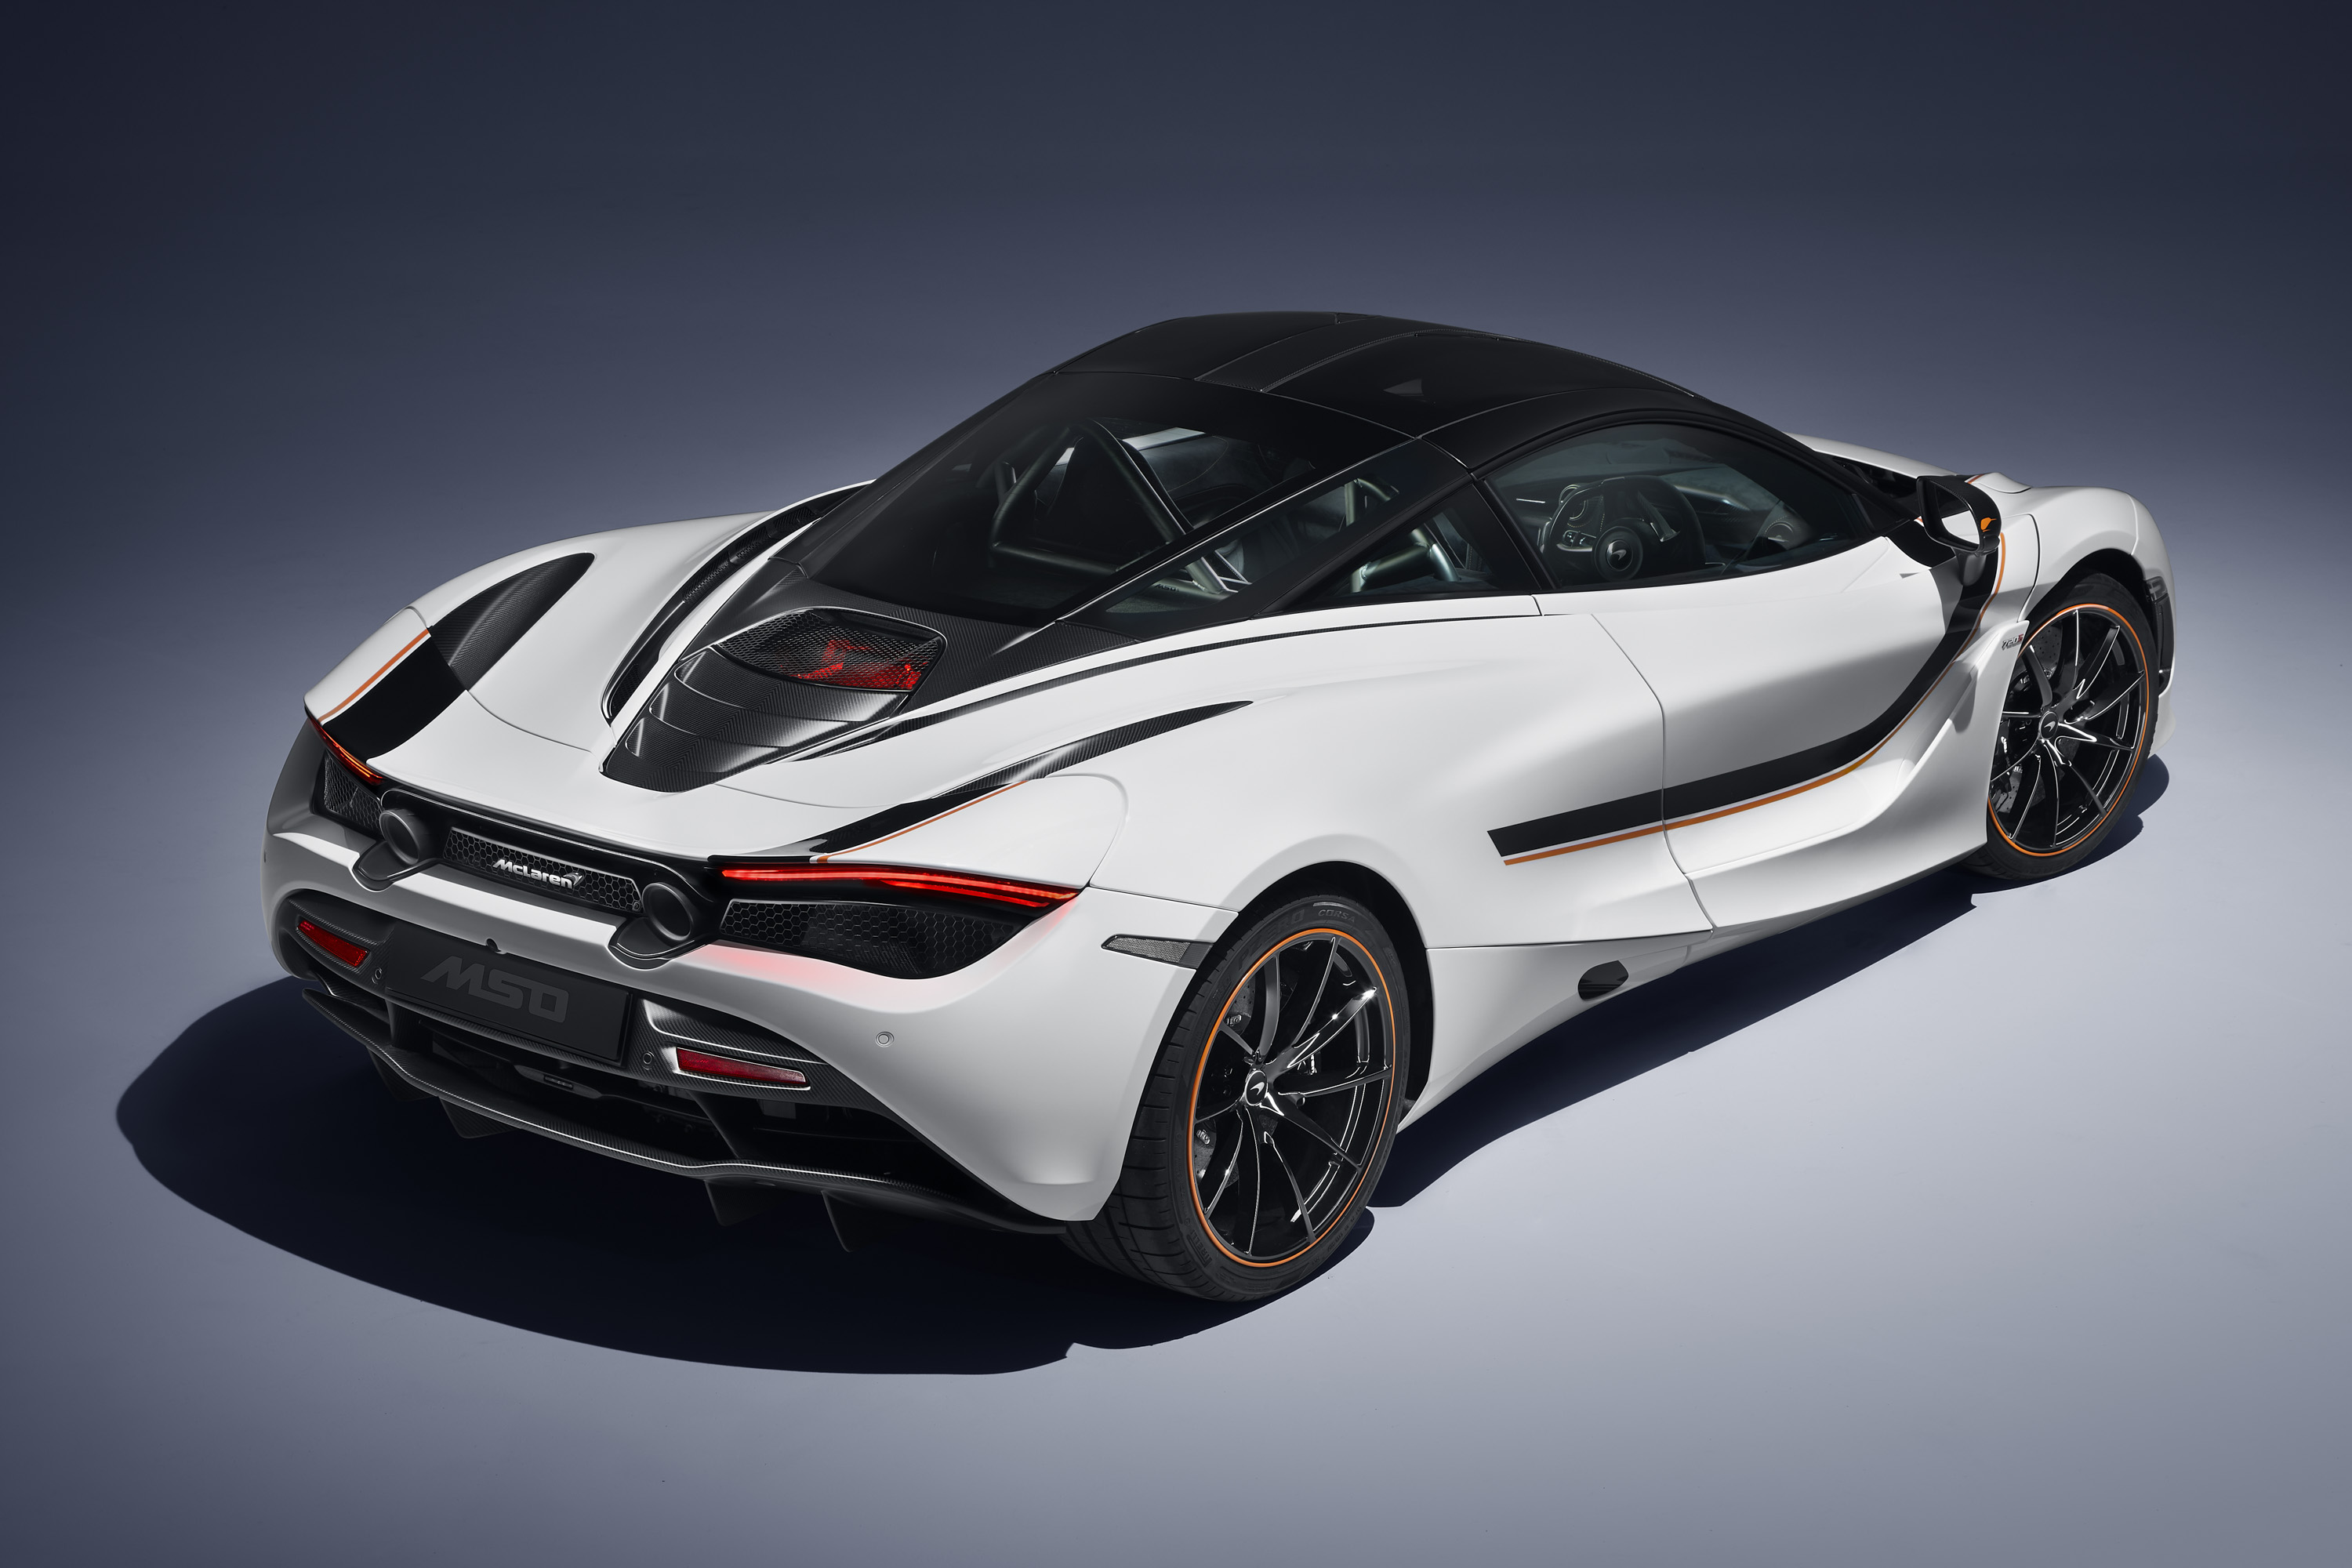 2018 Mclaren 720s Track Theme Top Speed